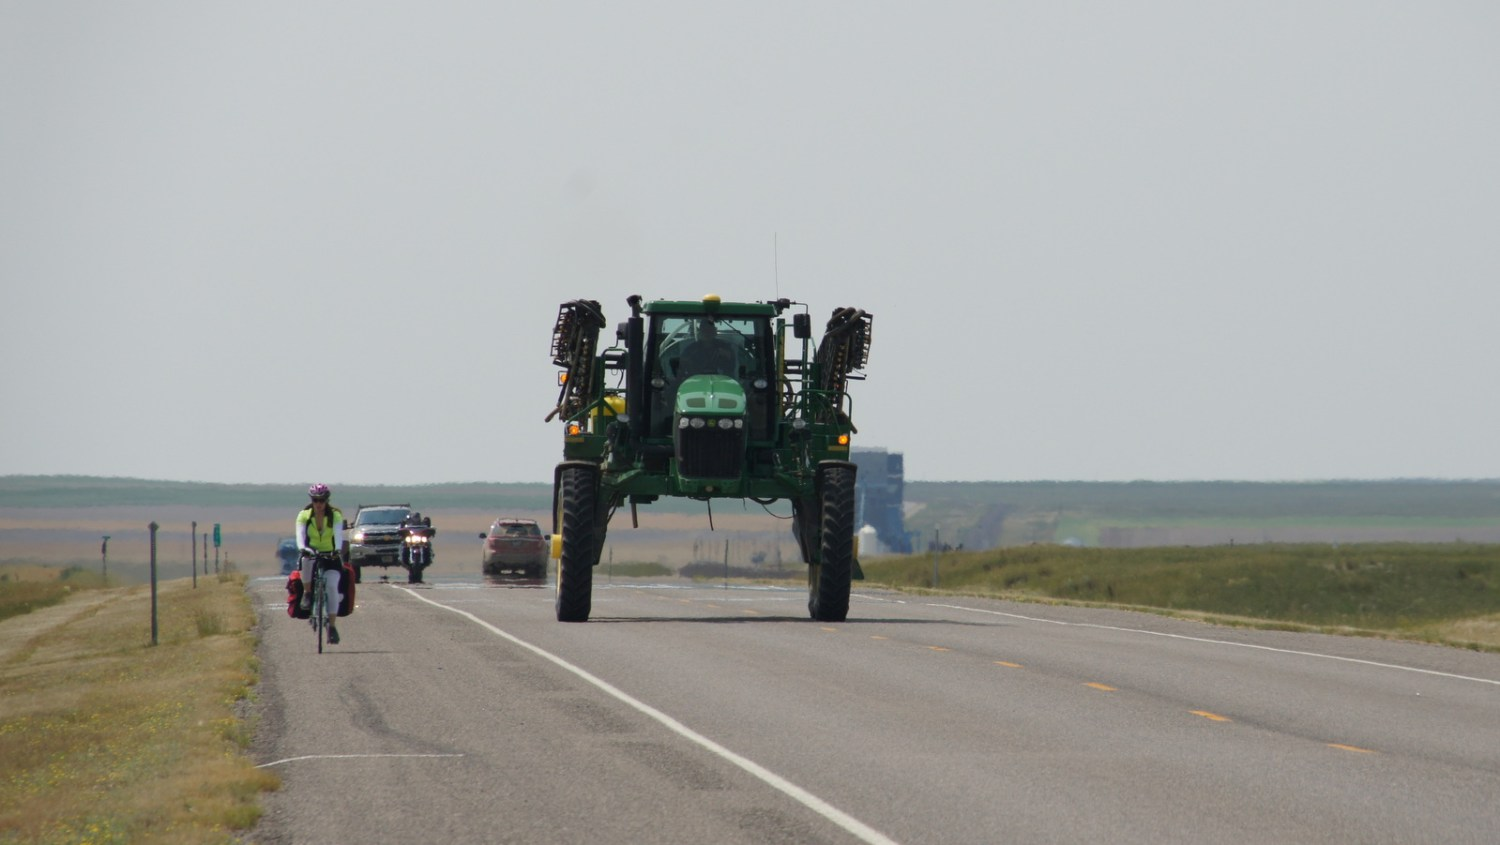 Chelsea and a giant piece of farm machinery share Highway 2 in northern Montana.